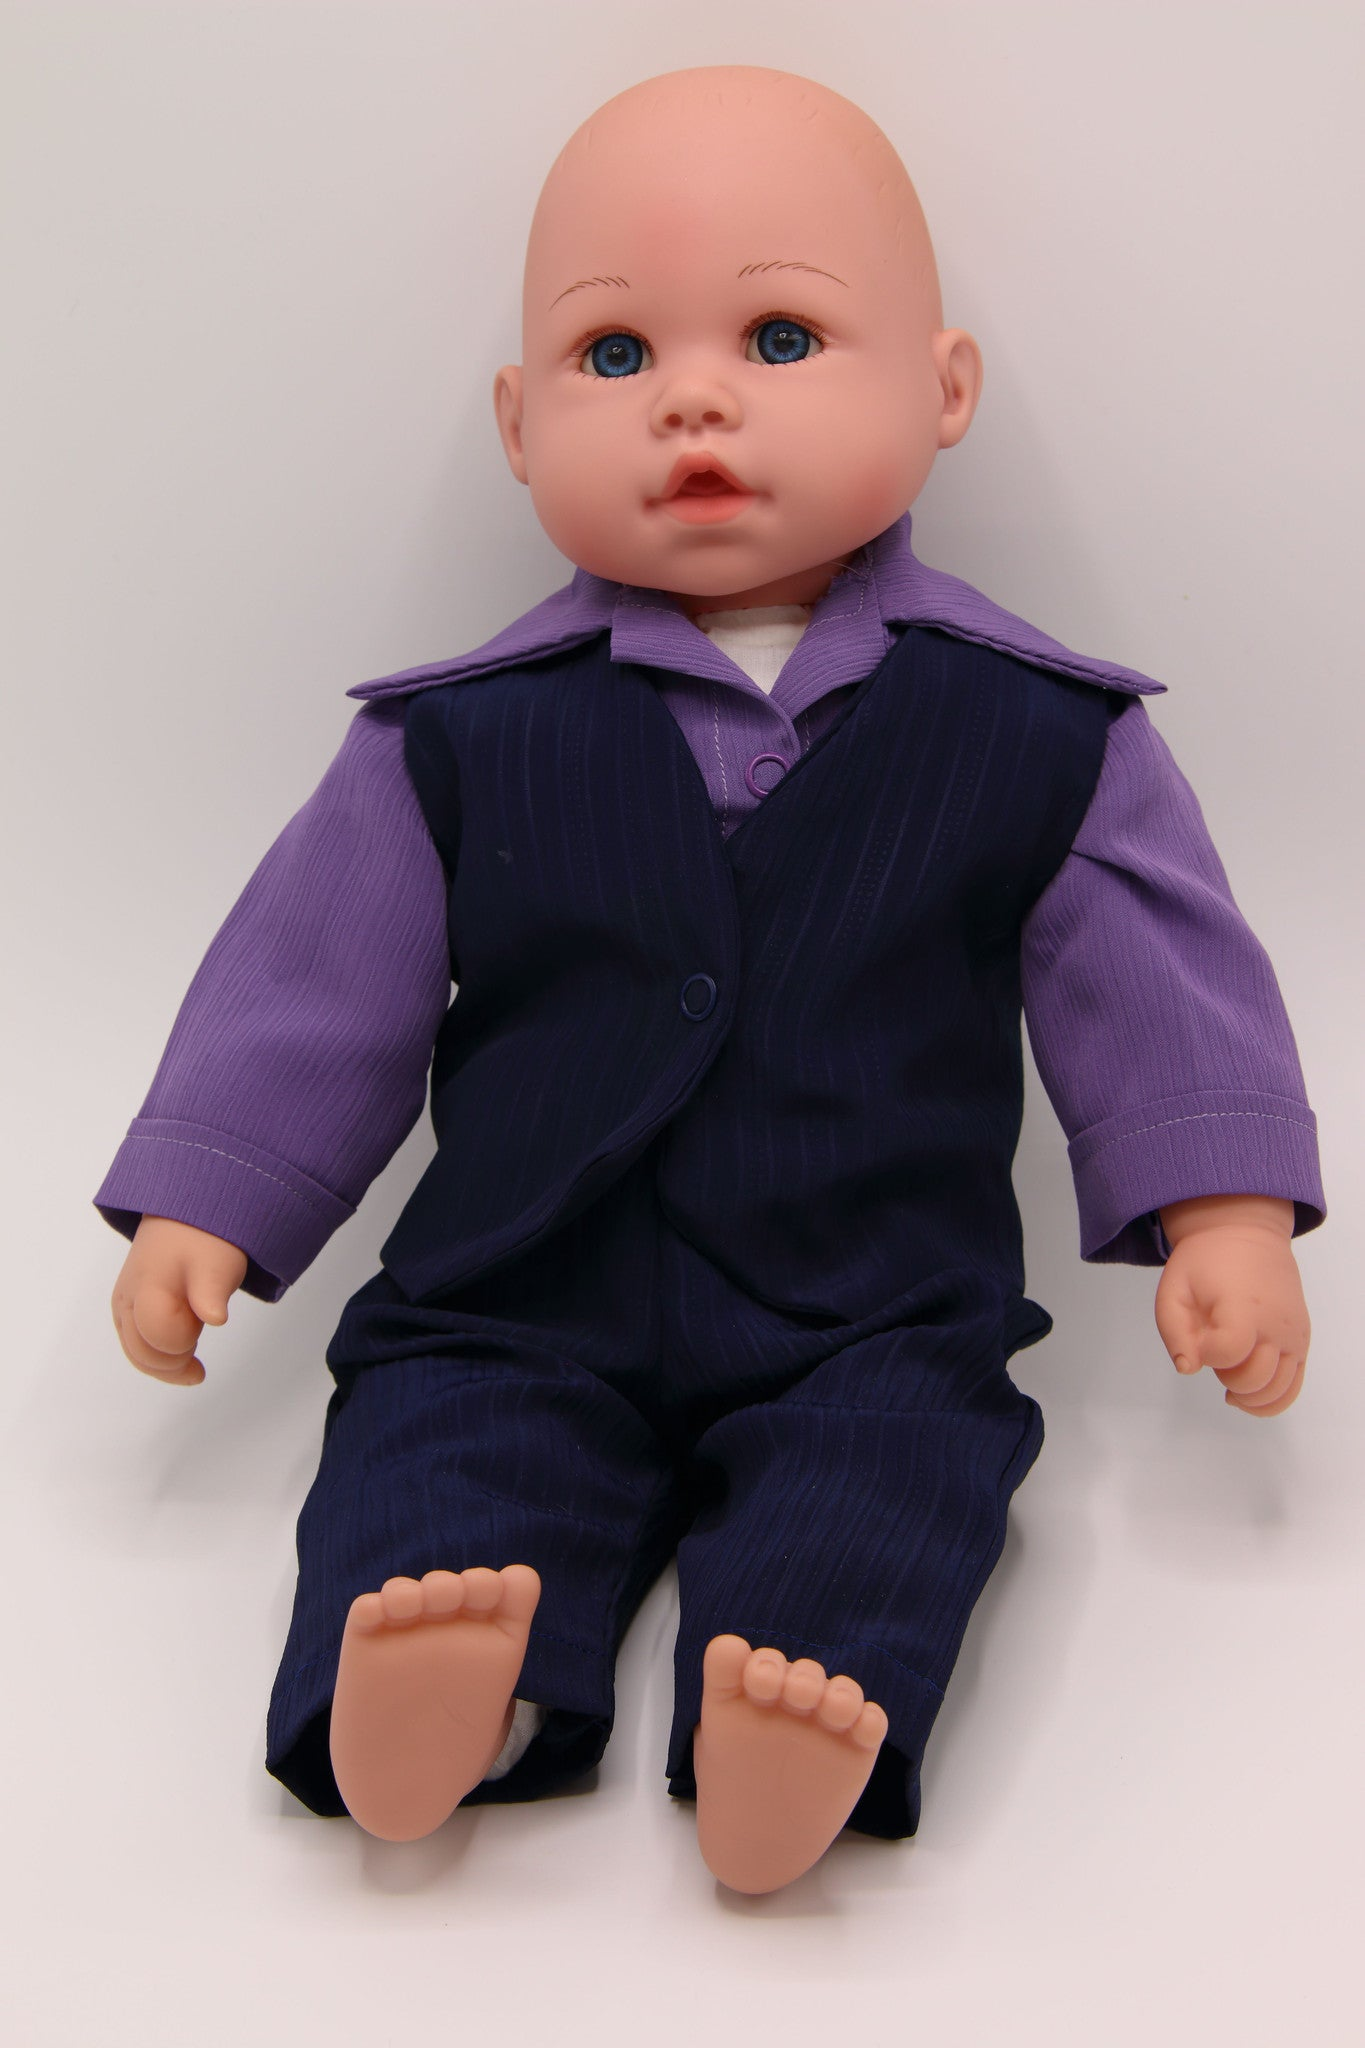 Amish Doll Baby